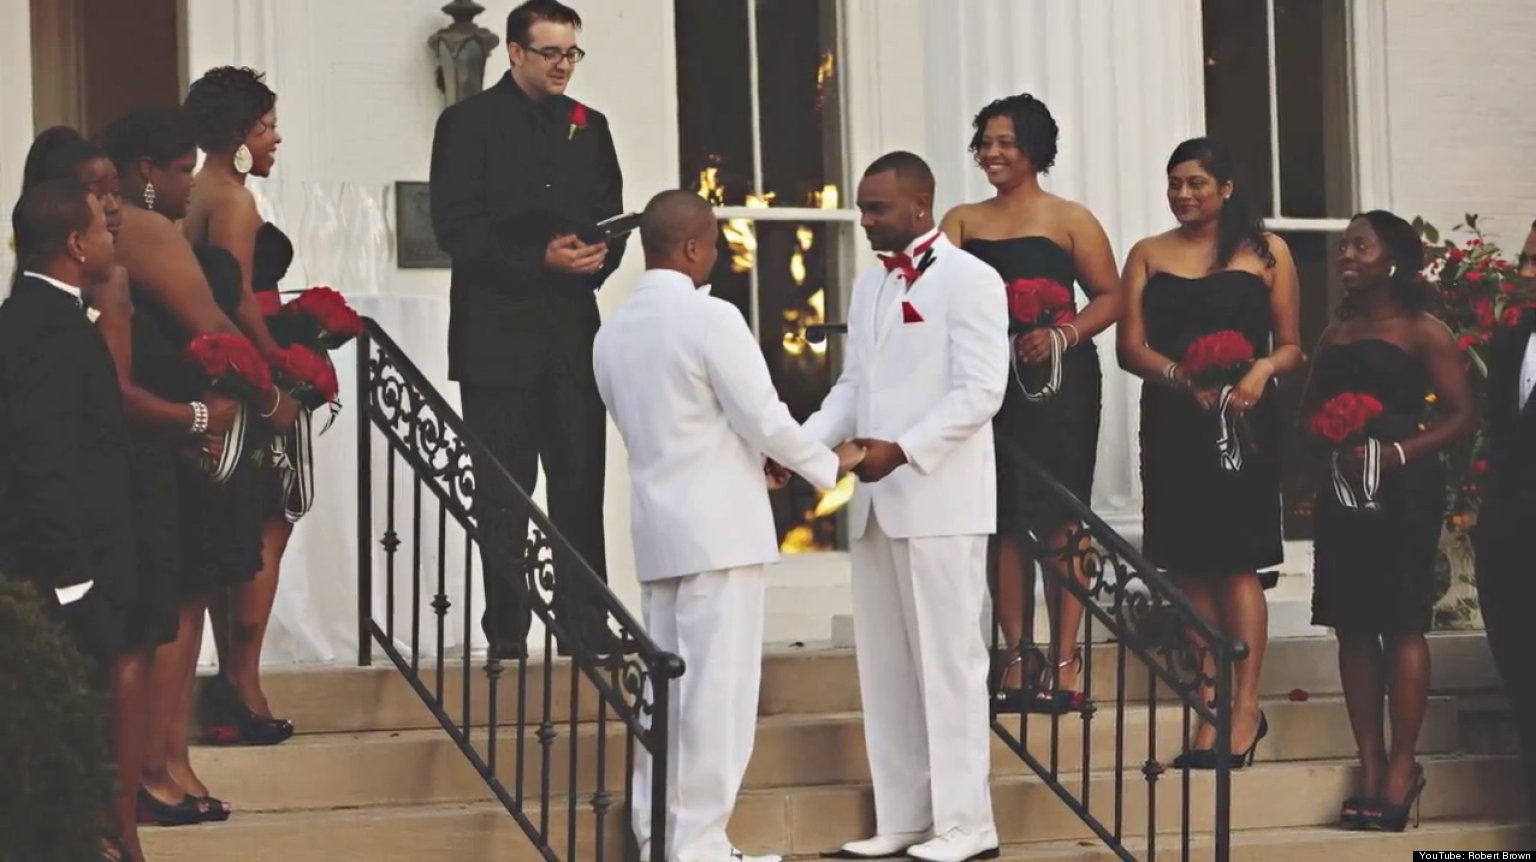 two men of kappa alpha psi fraternity marry each other